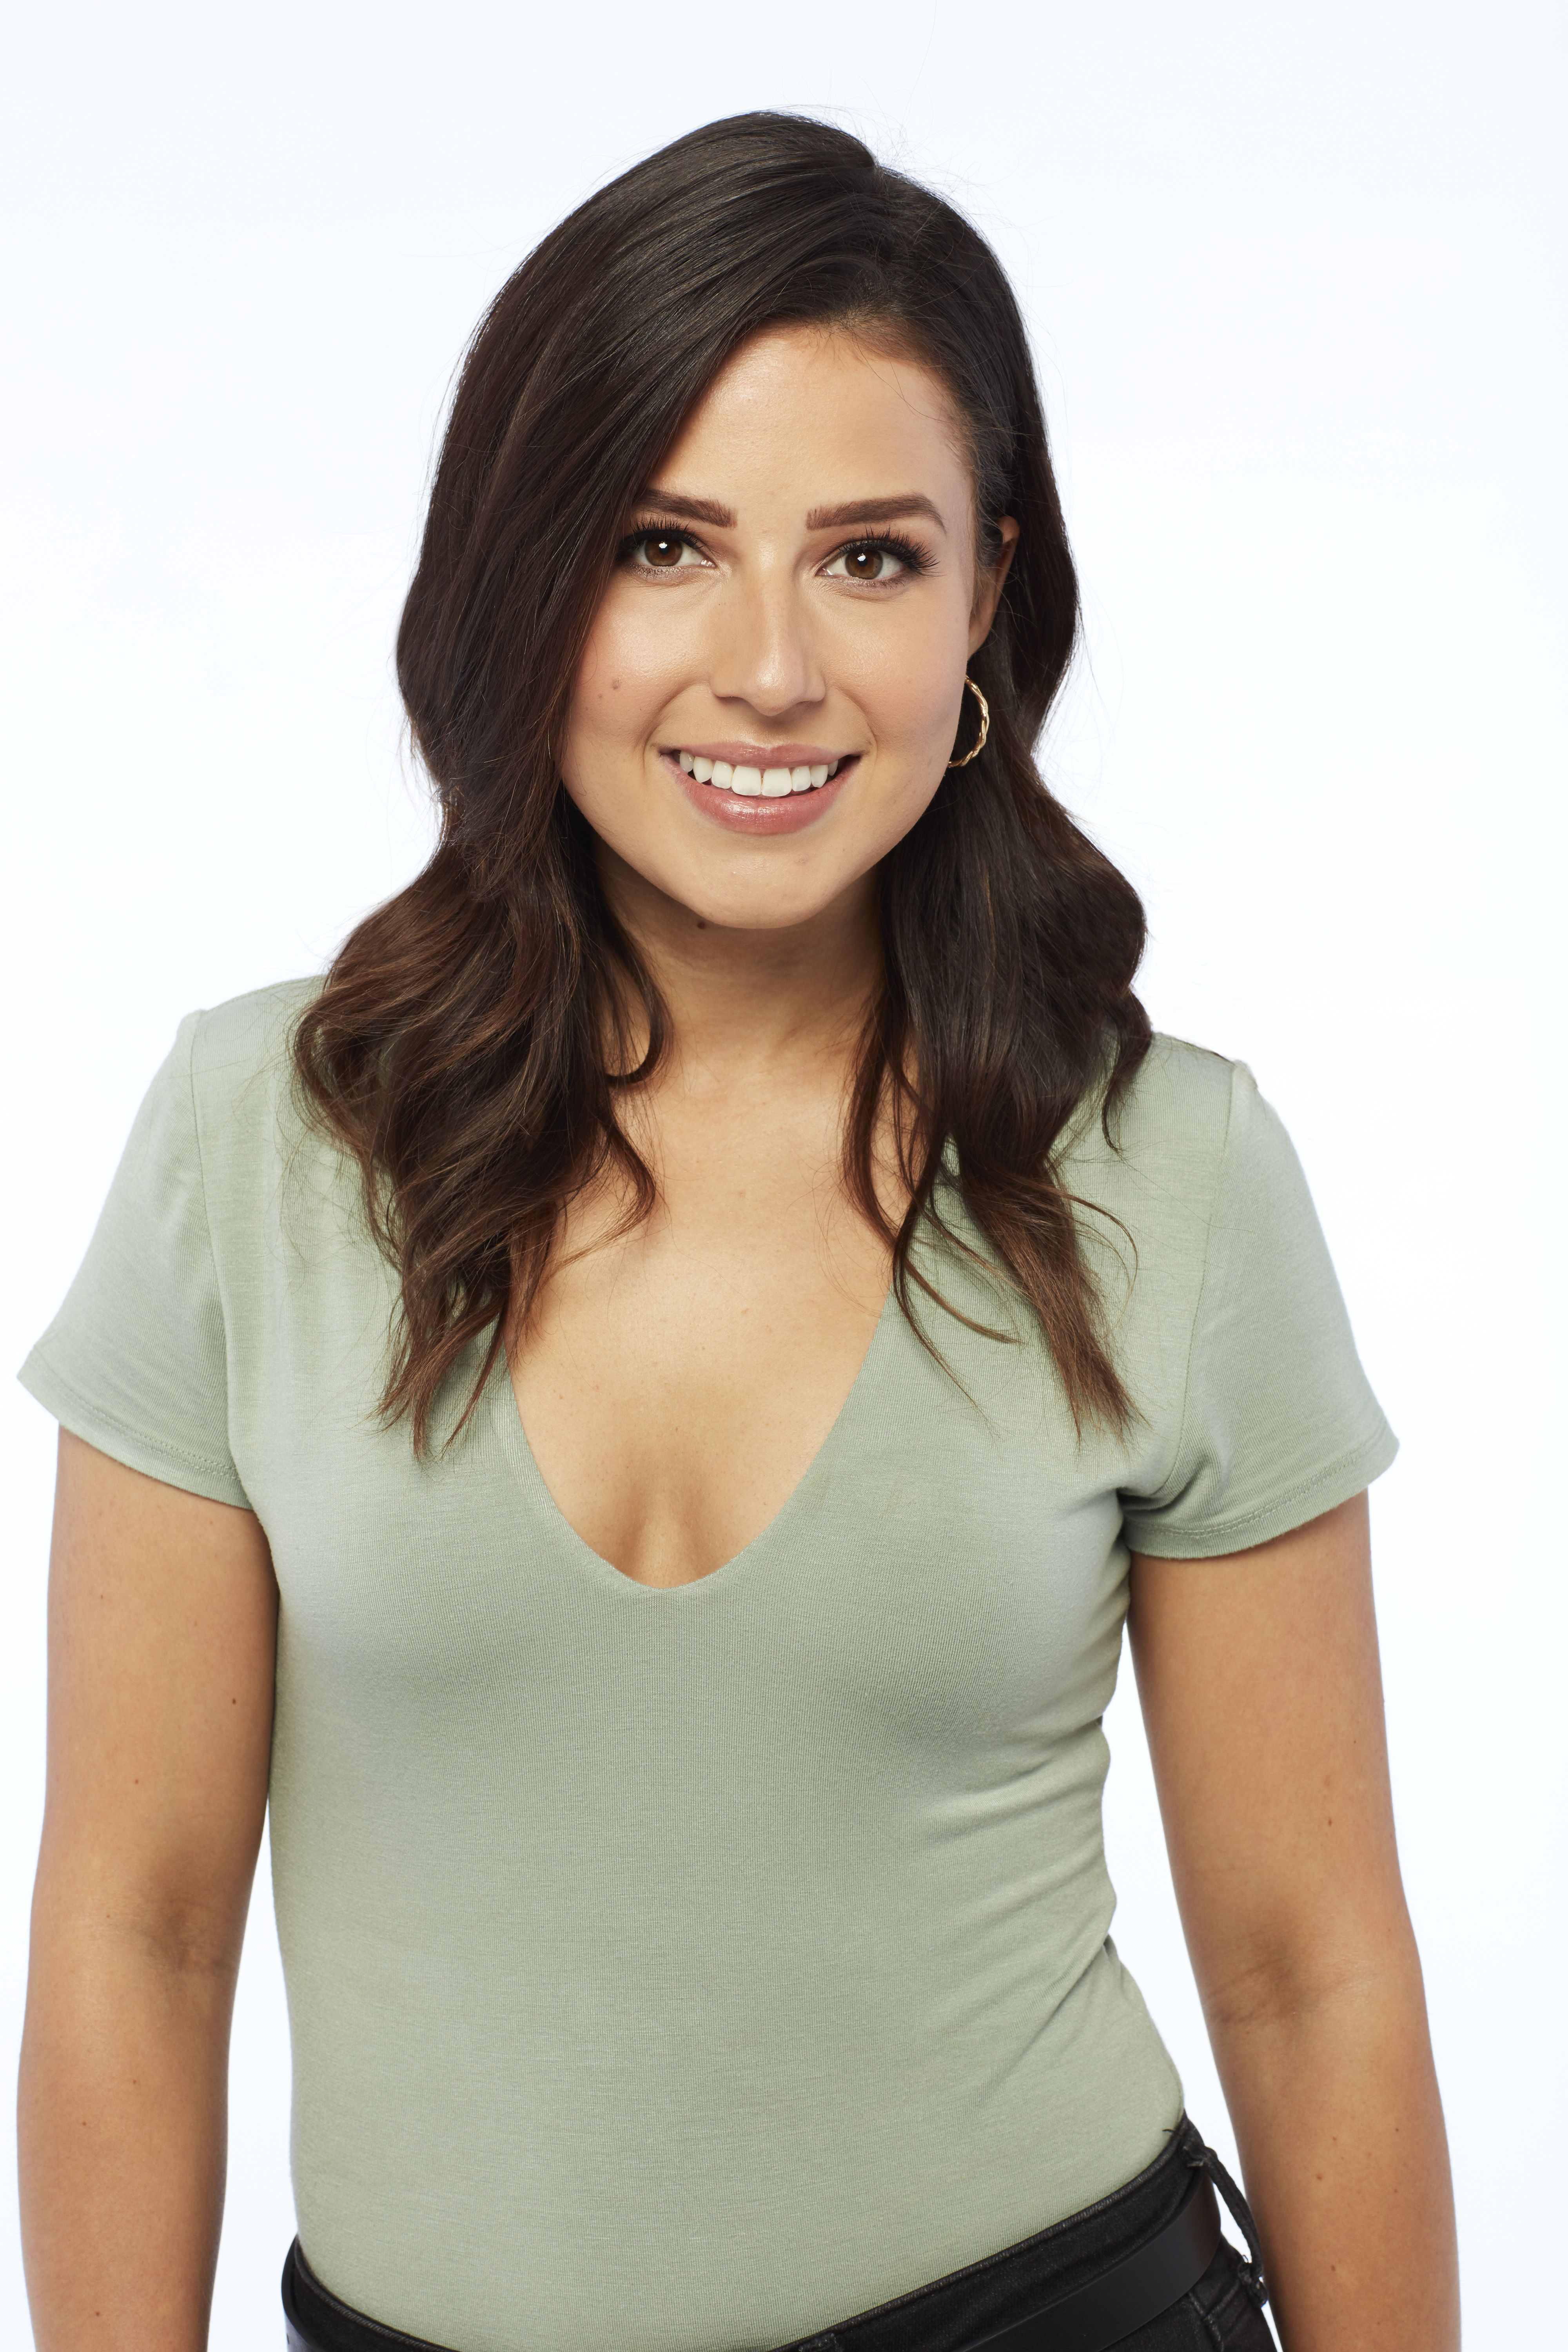 Who Is Katie Thurston, the Rumored Next 'Bachelorette'?